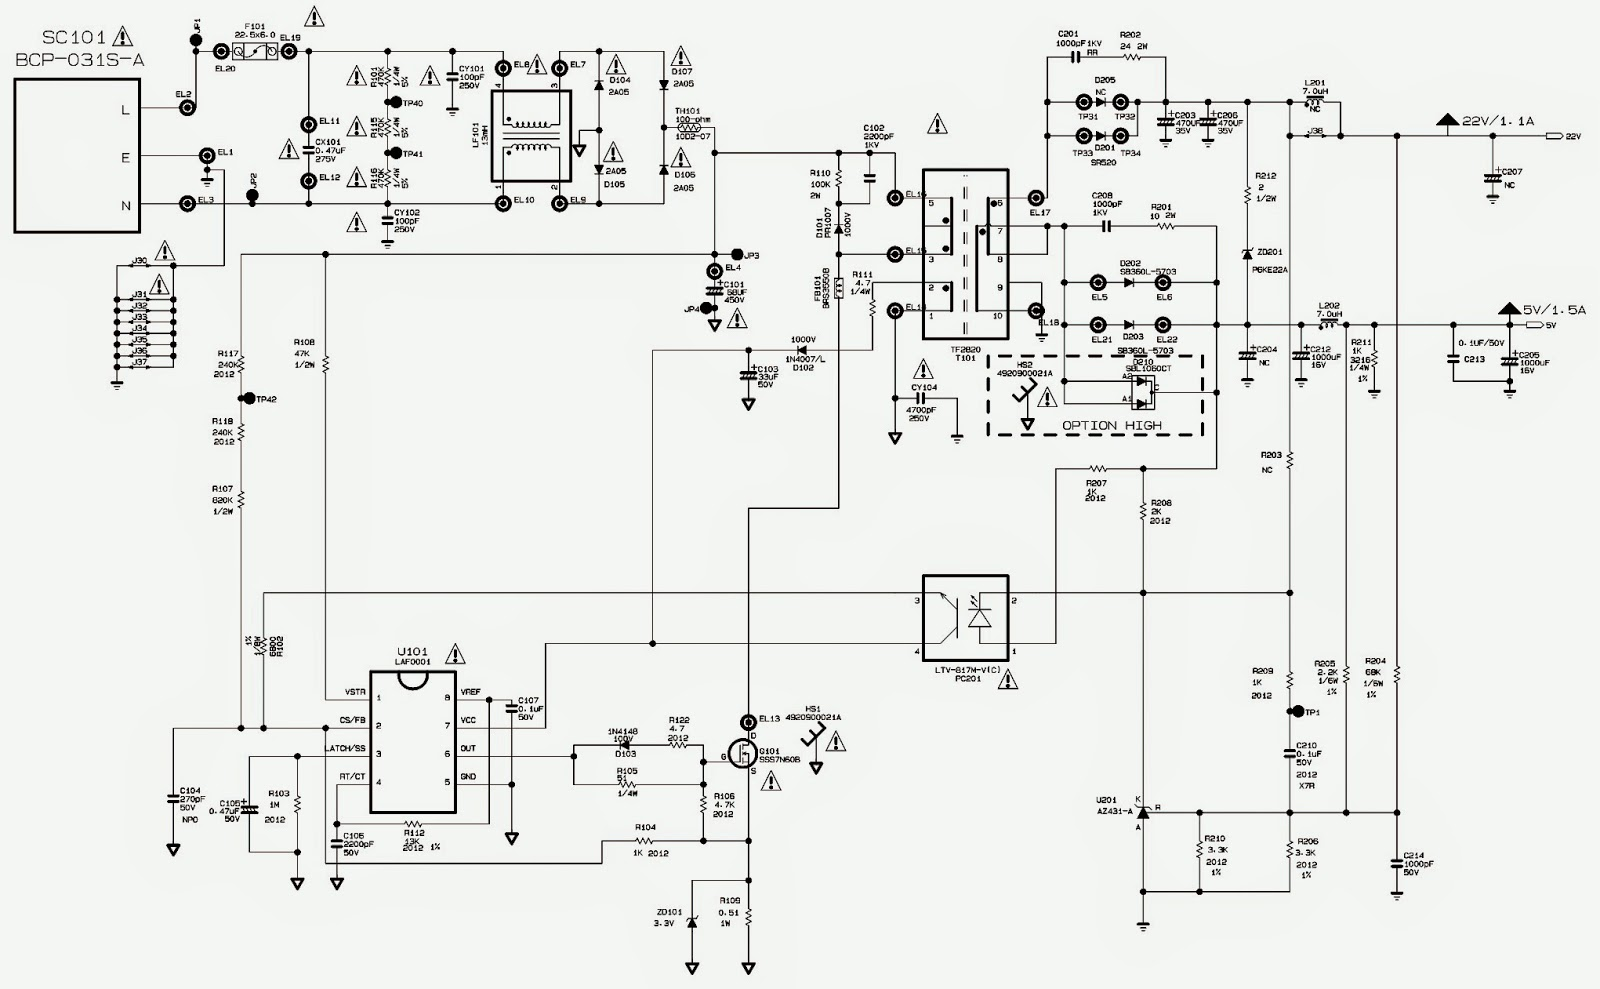 Schematic Diagrams: LG FLATRON W1942S LCD MONITOR